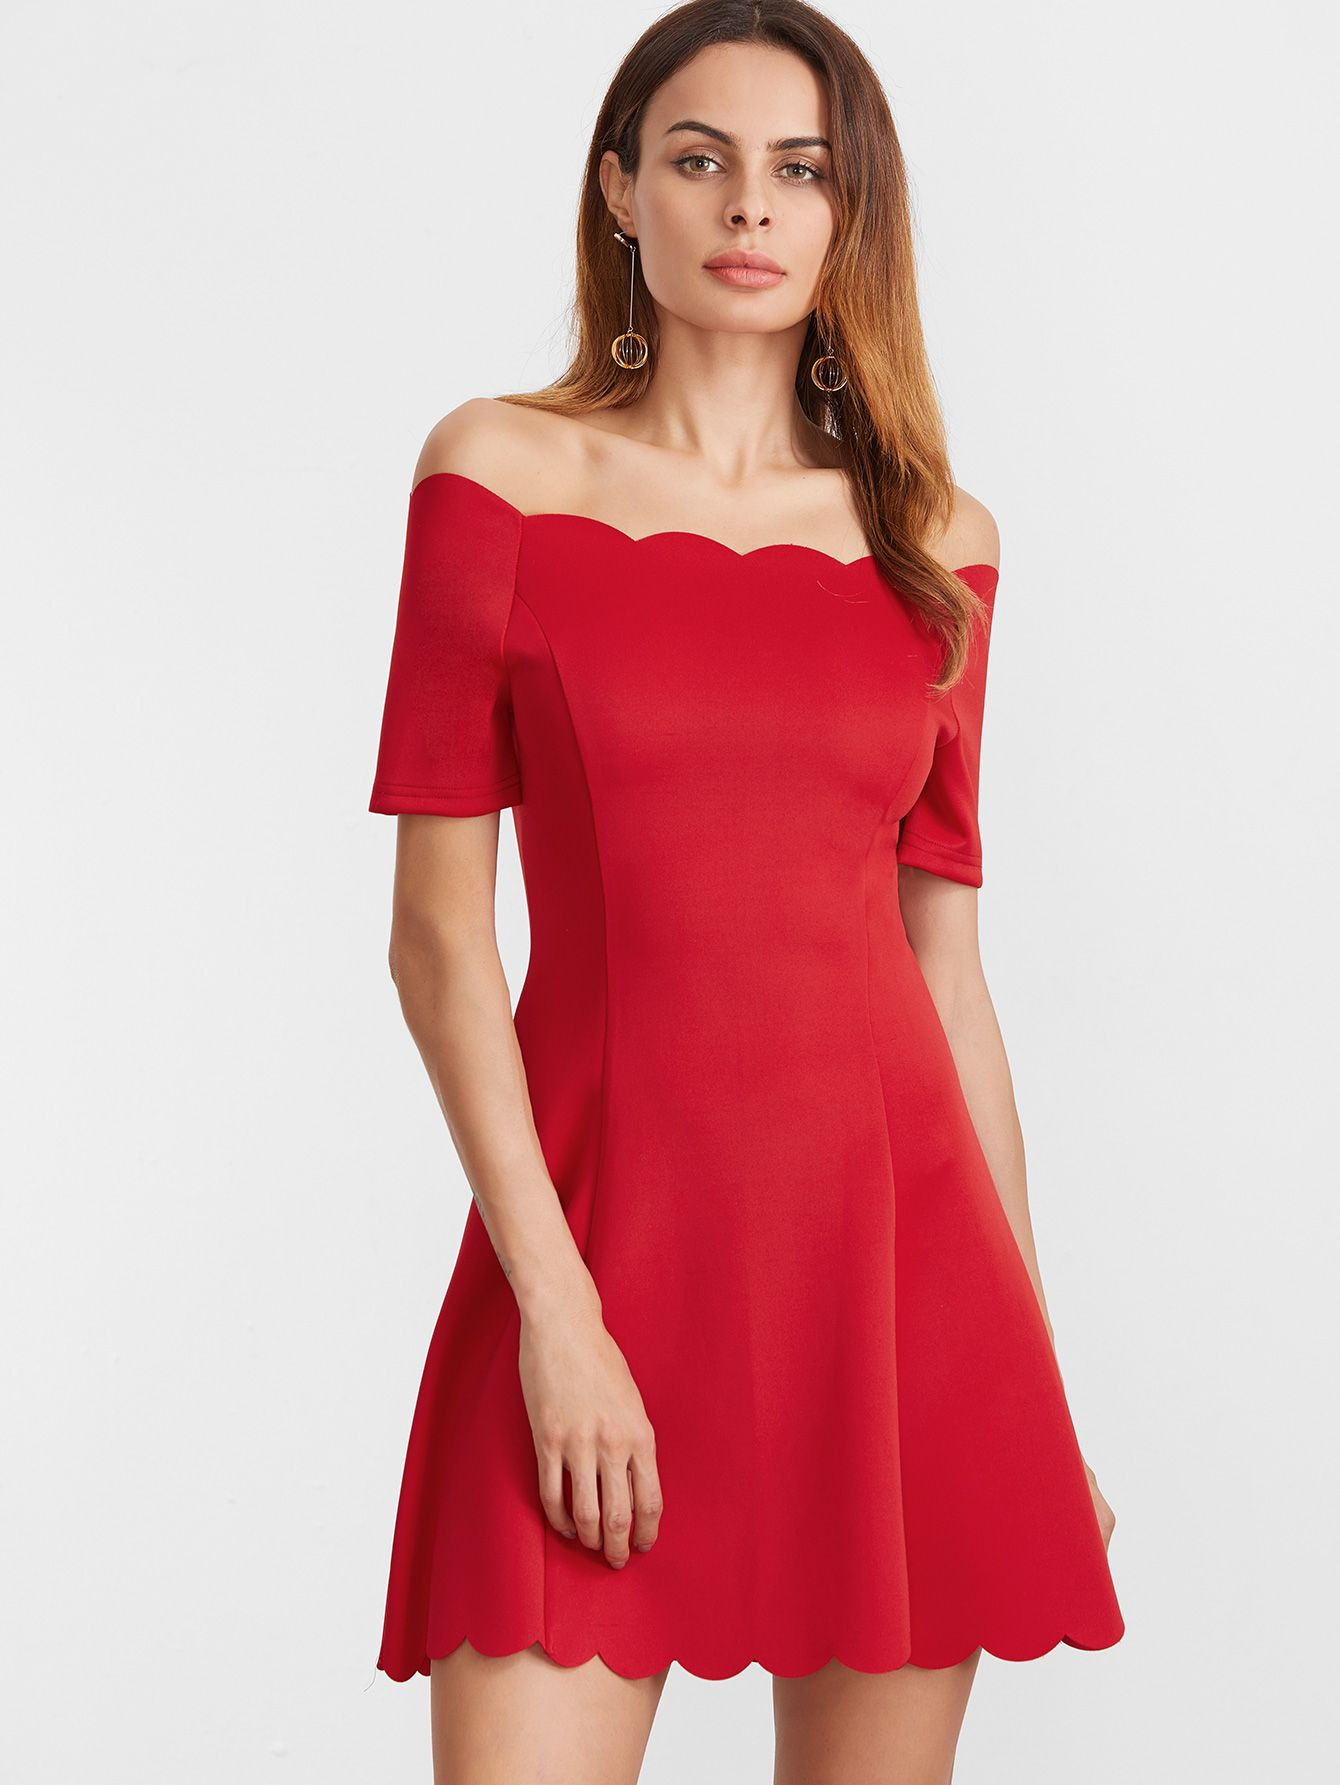 f2e538f347 Shop Red Scallop Edge Off The Shoulder Dress online. SheIn offers Red  Scallop Edge Off The Shoulder Dress & more to fit your fashionable needs.